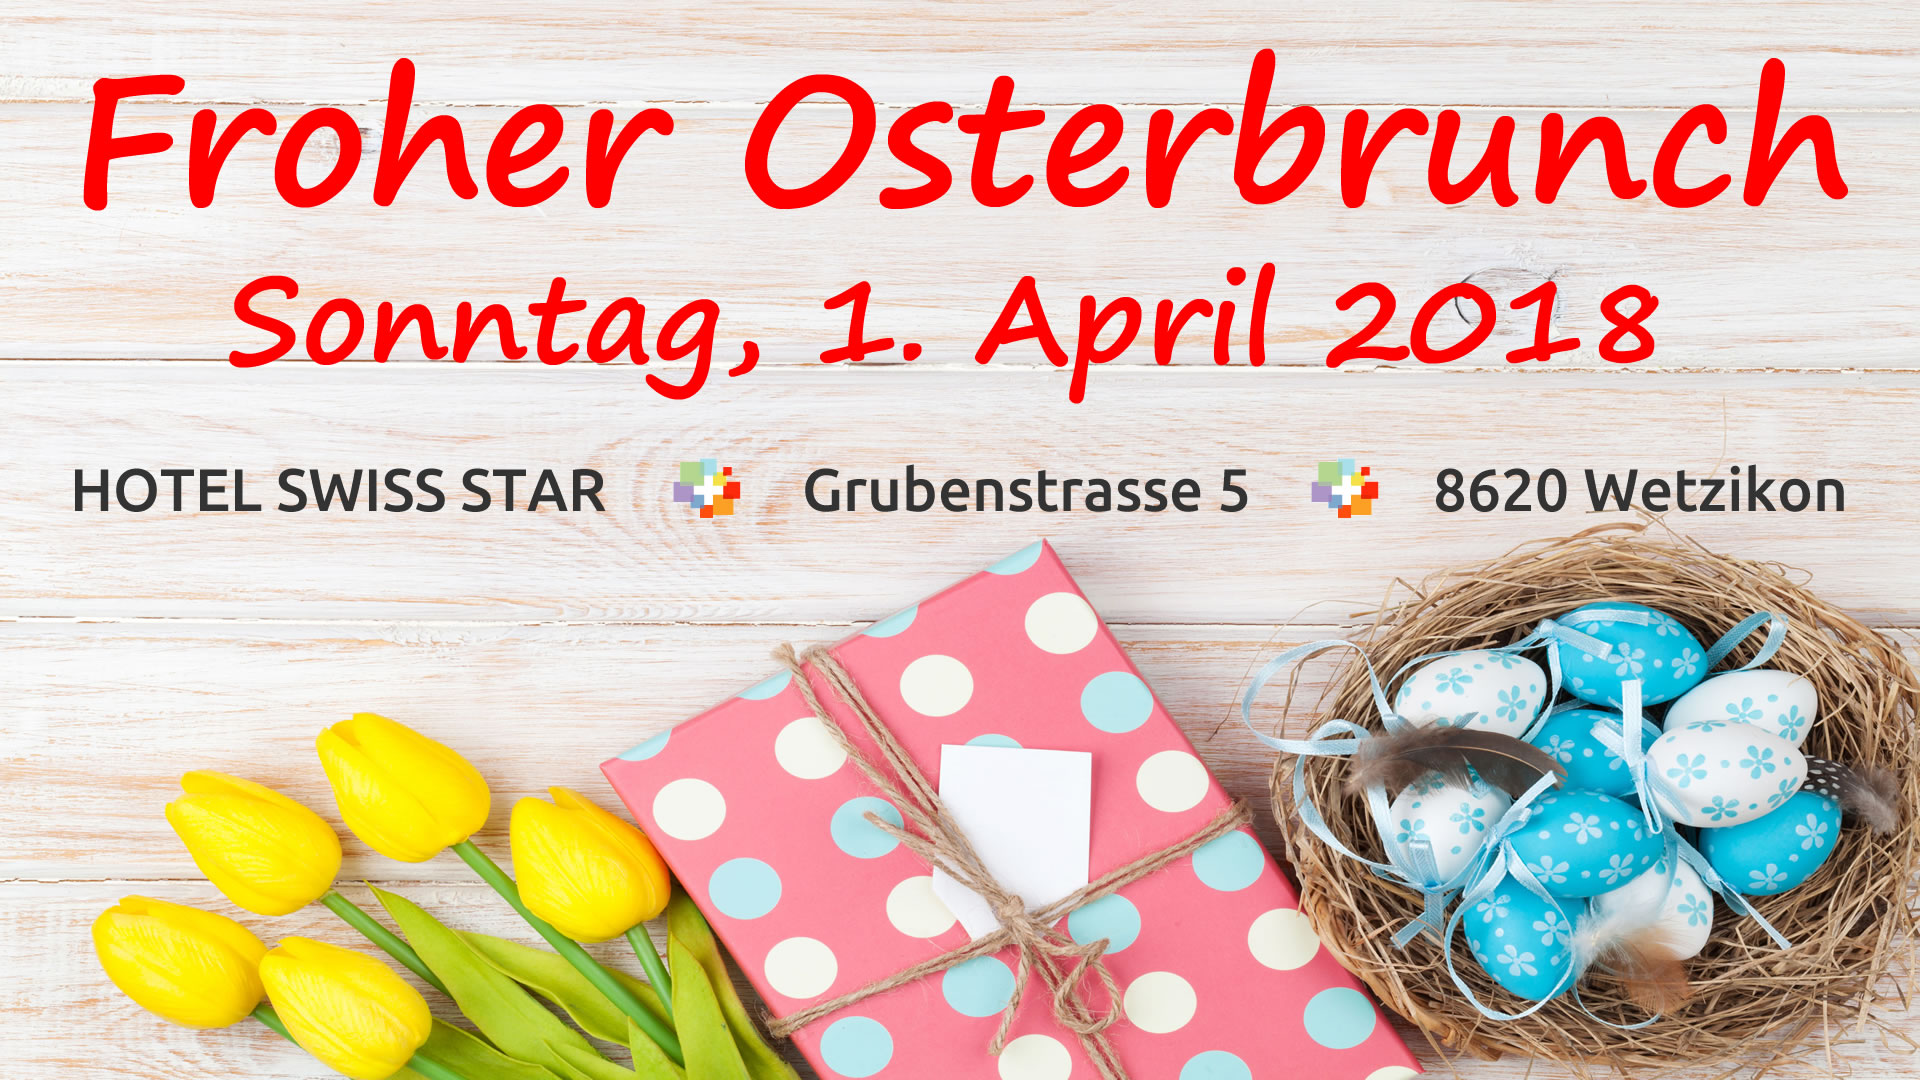 <a href=&quot;http://www.hotel-swiss-star.ch&quot; target=&quot;_blank&quot;>Froher Osterbrunch</a>